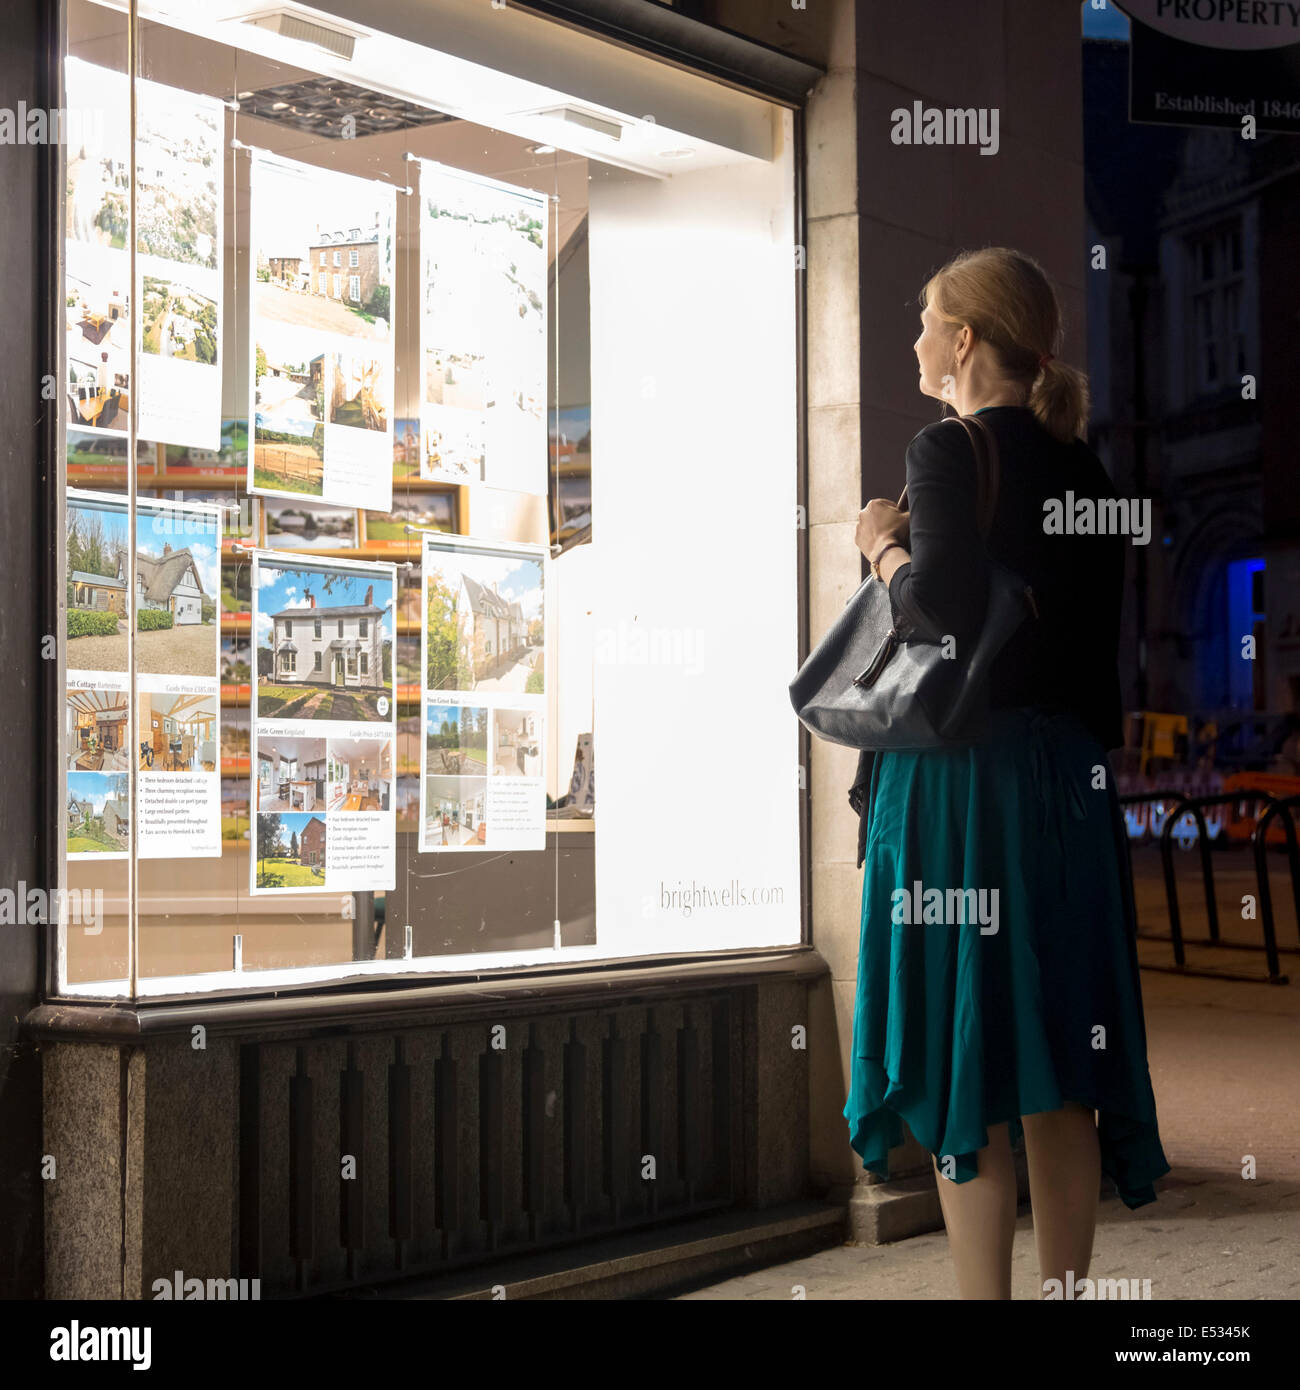 Woman looking in an estate agents window at night, UK. - Stock Image